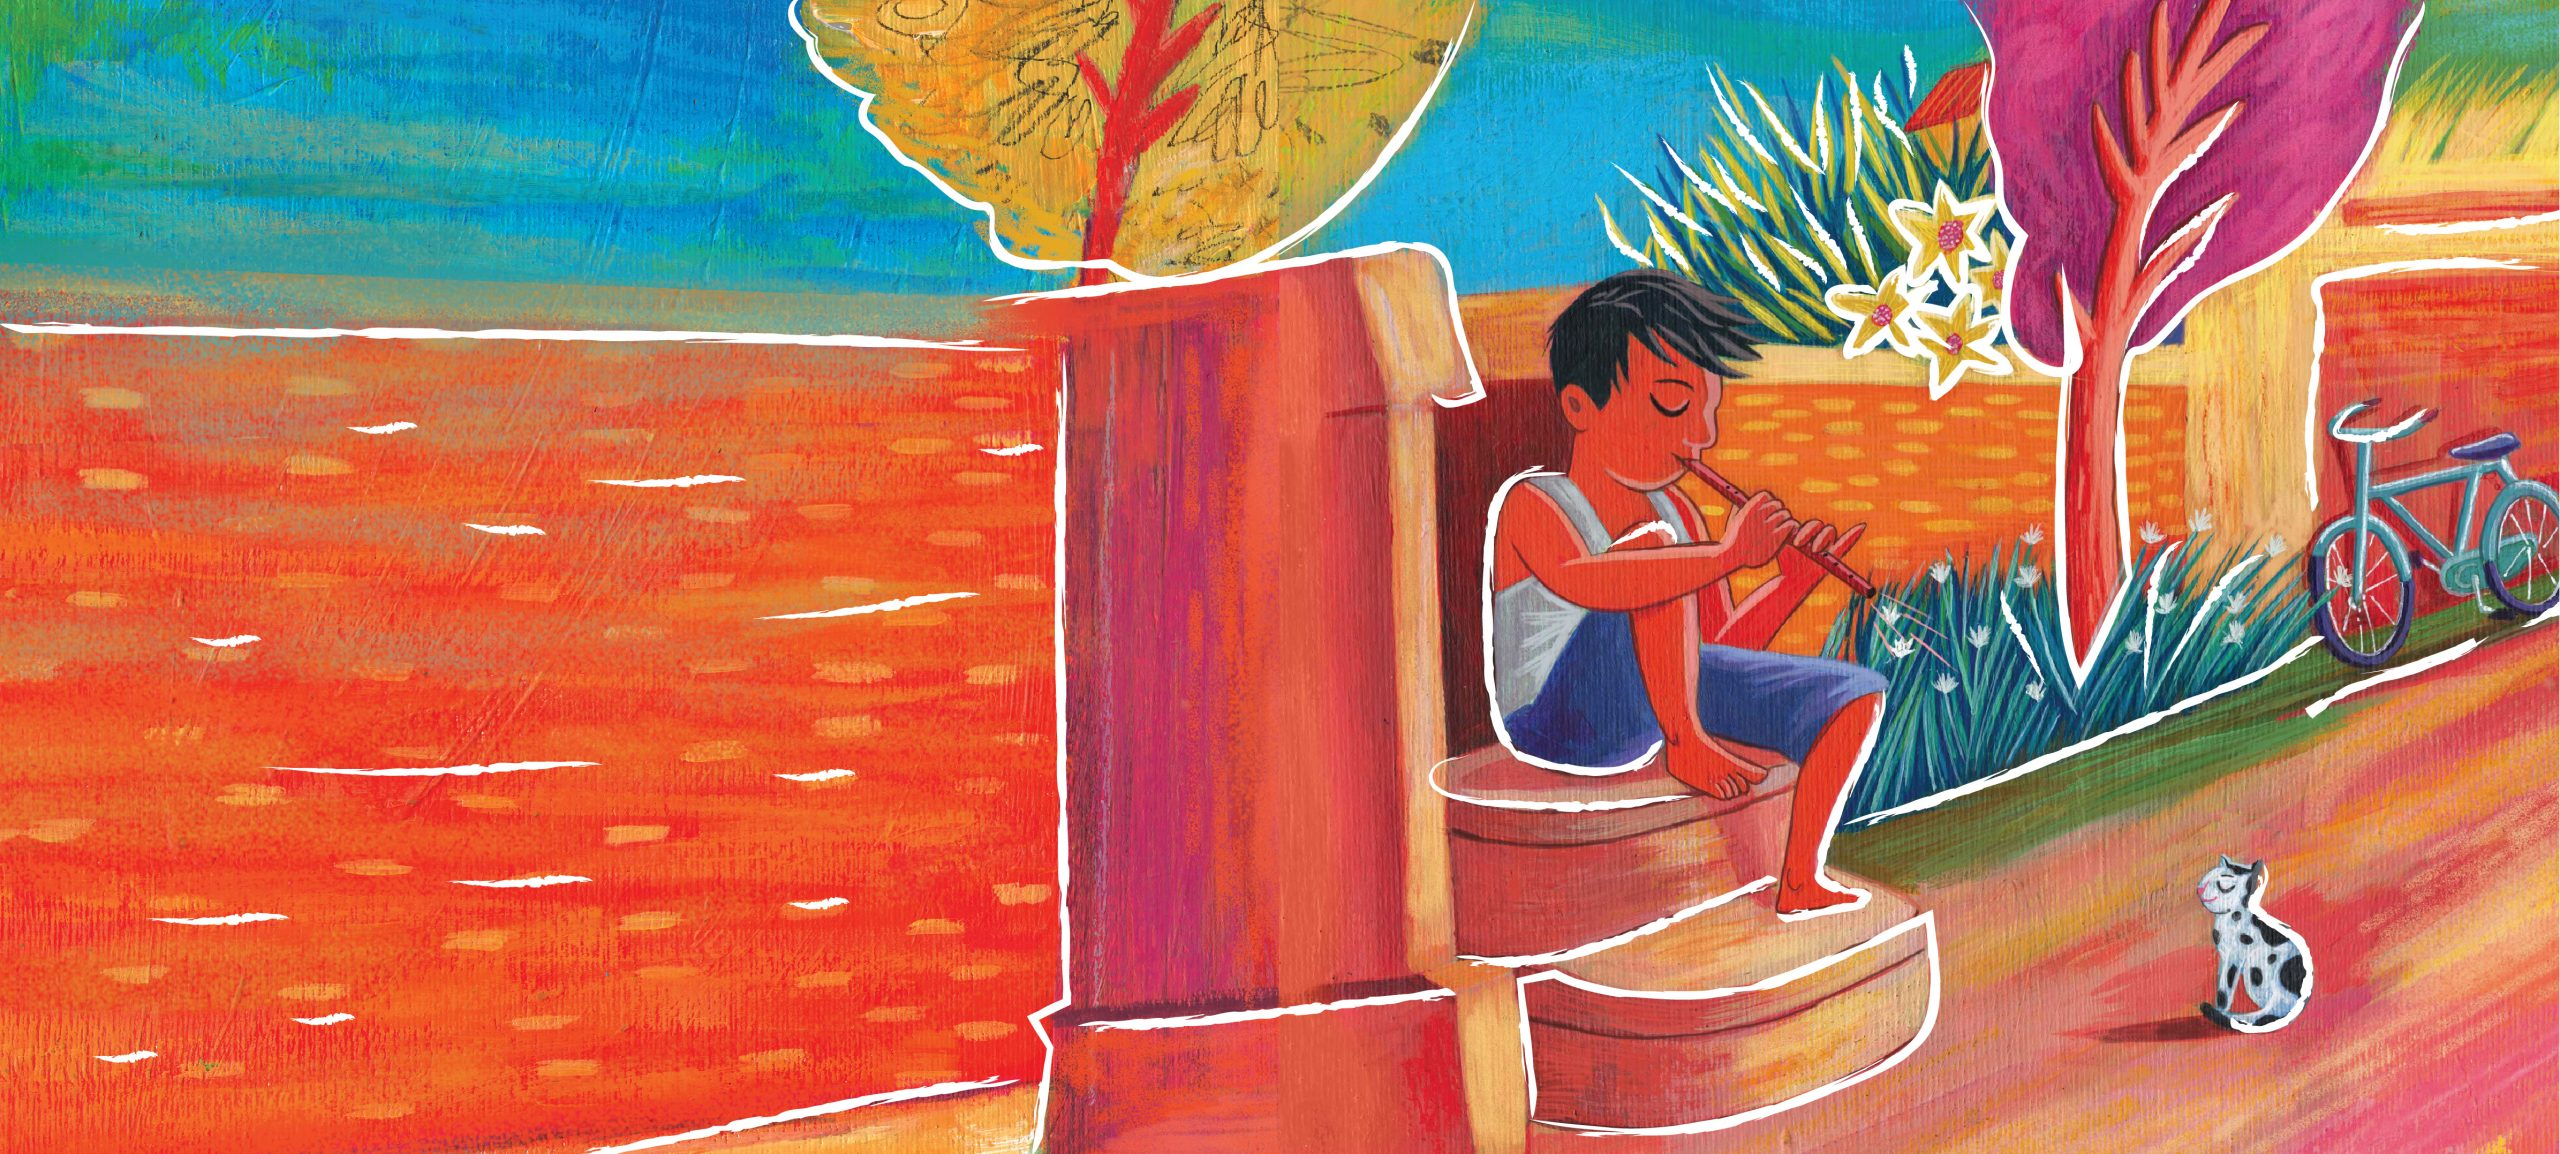 Ranji the Music Maker,  a story every child must read!